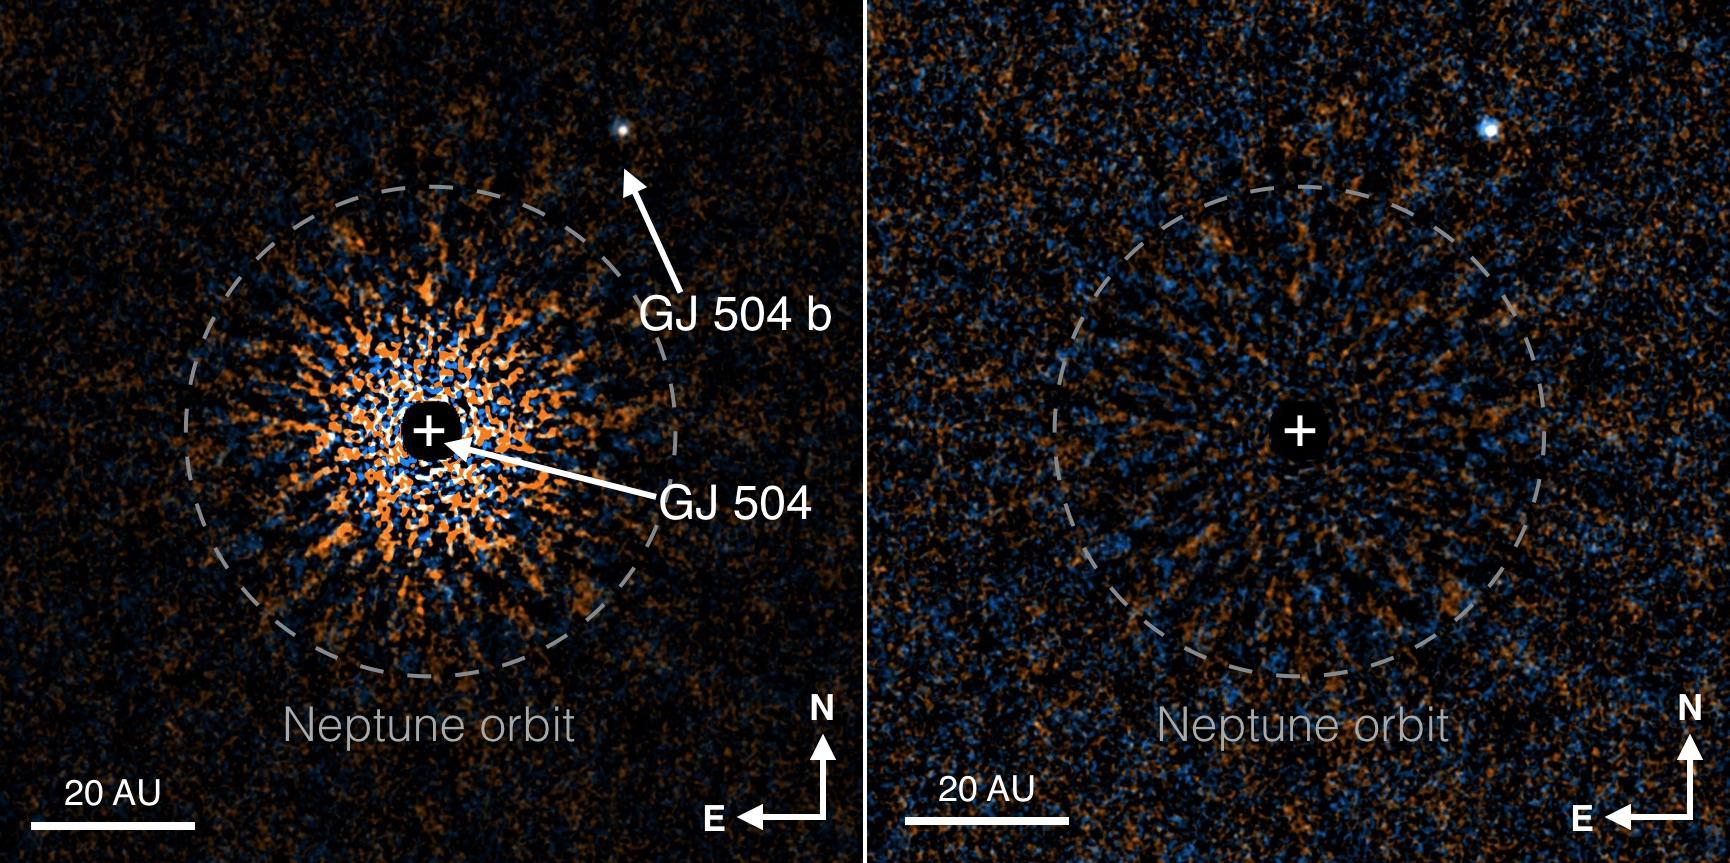 Subaru Telescope's Imaging Discovery of a Second Jupiter Shows the Power and Significance of the SEEDS Project Figure1